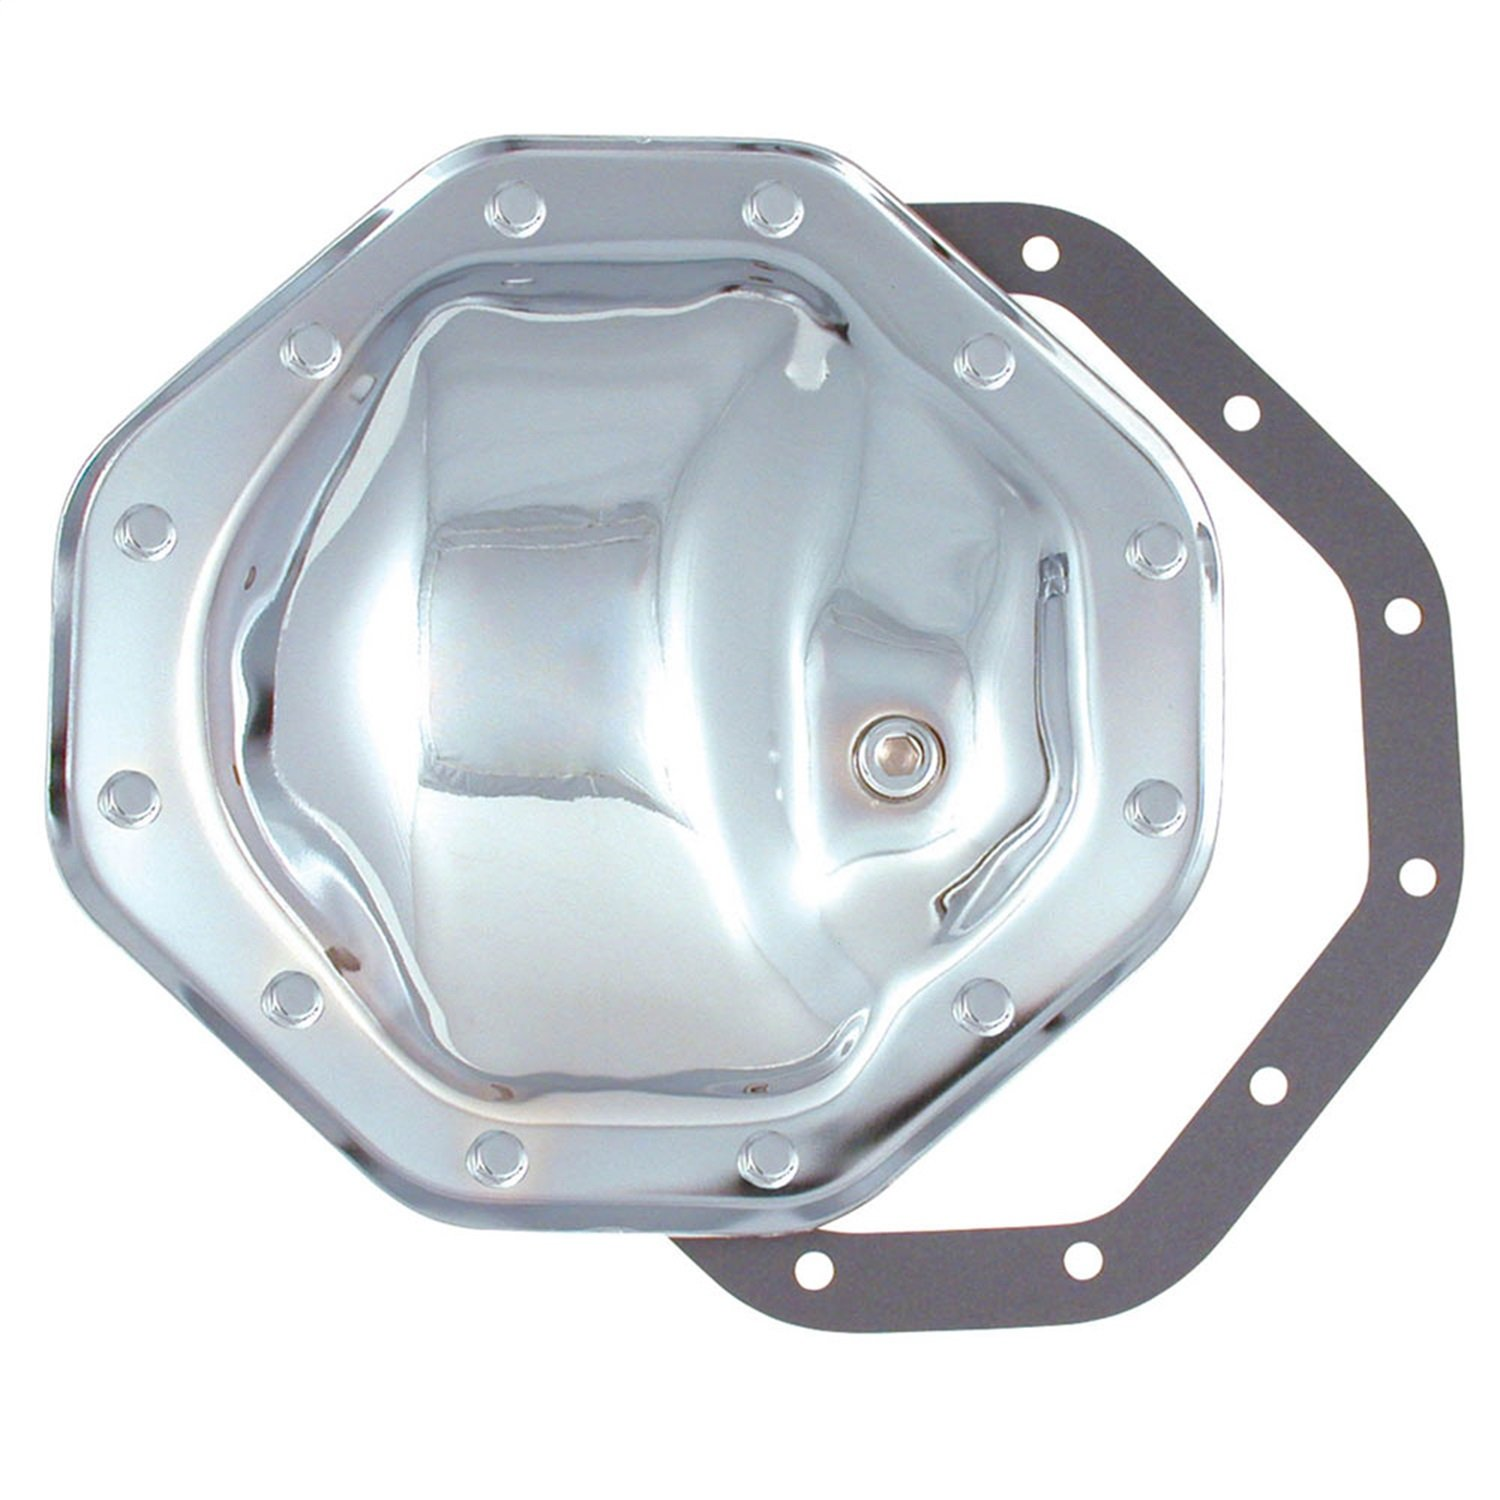 Spectre Performance 60899.25'' 12-Bolt Differential Cover for Dodge Pickup by Spectre Performance